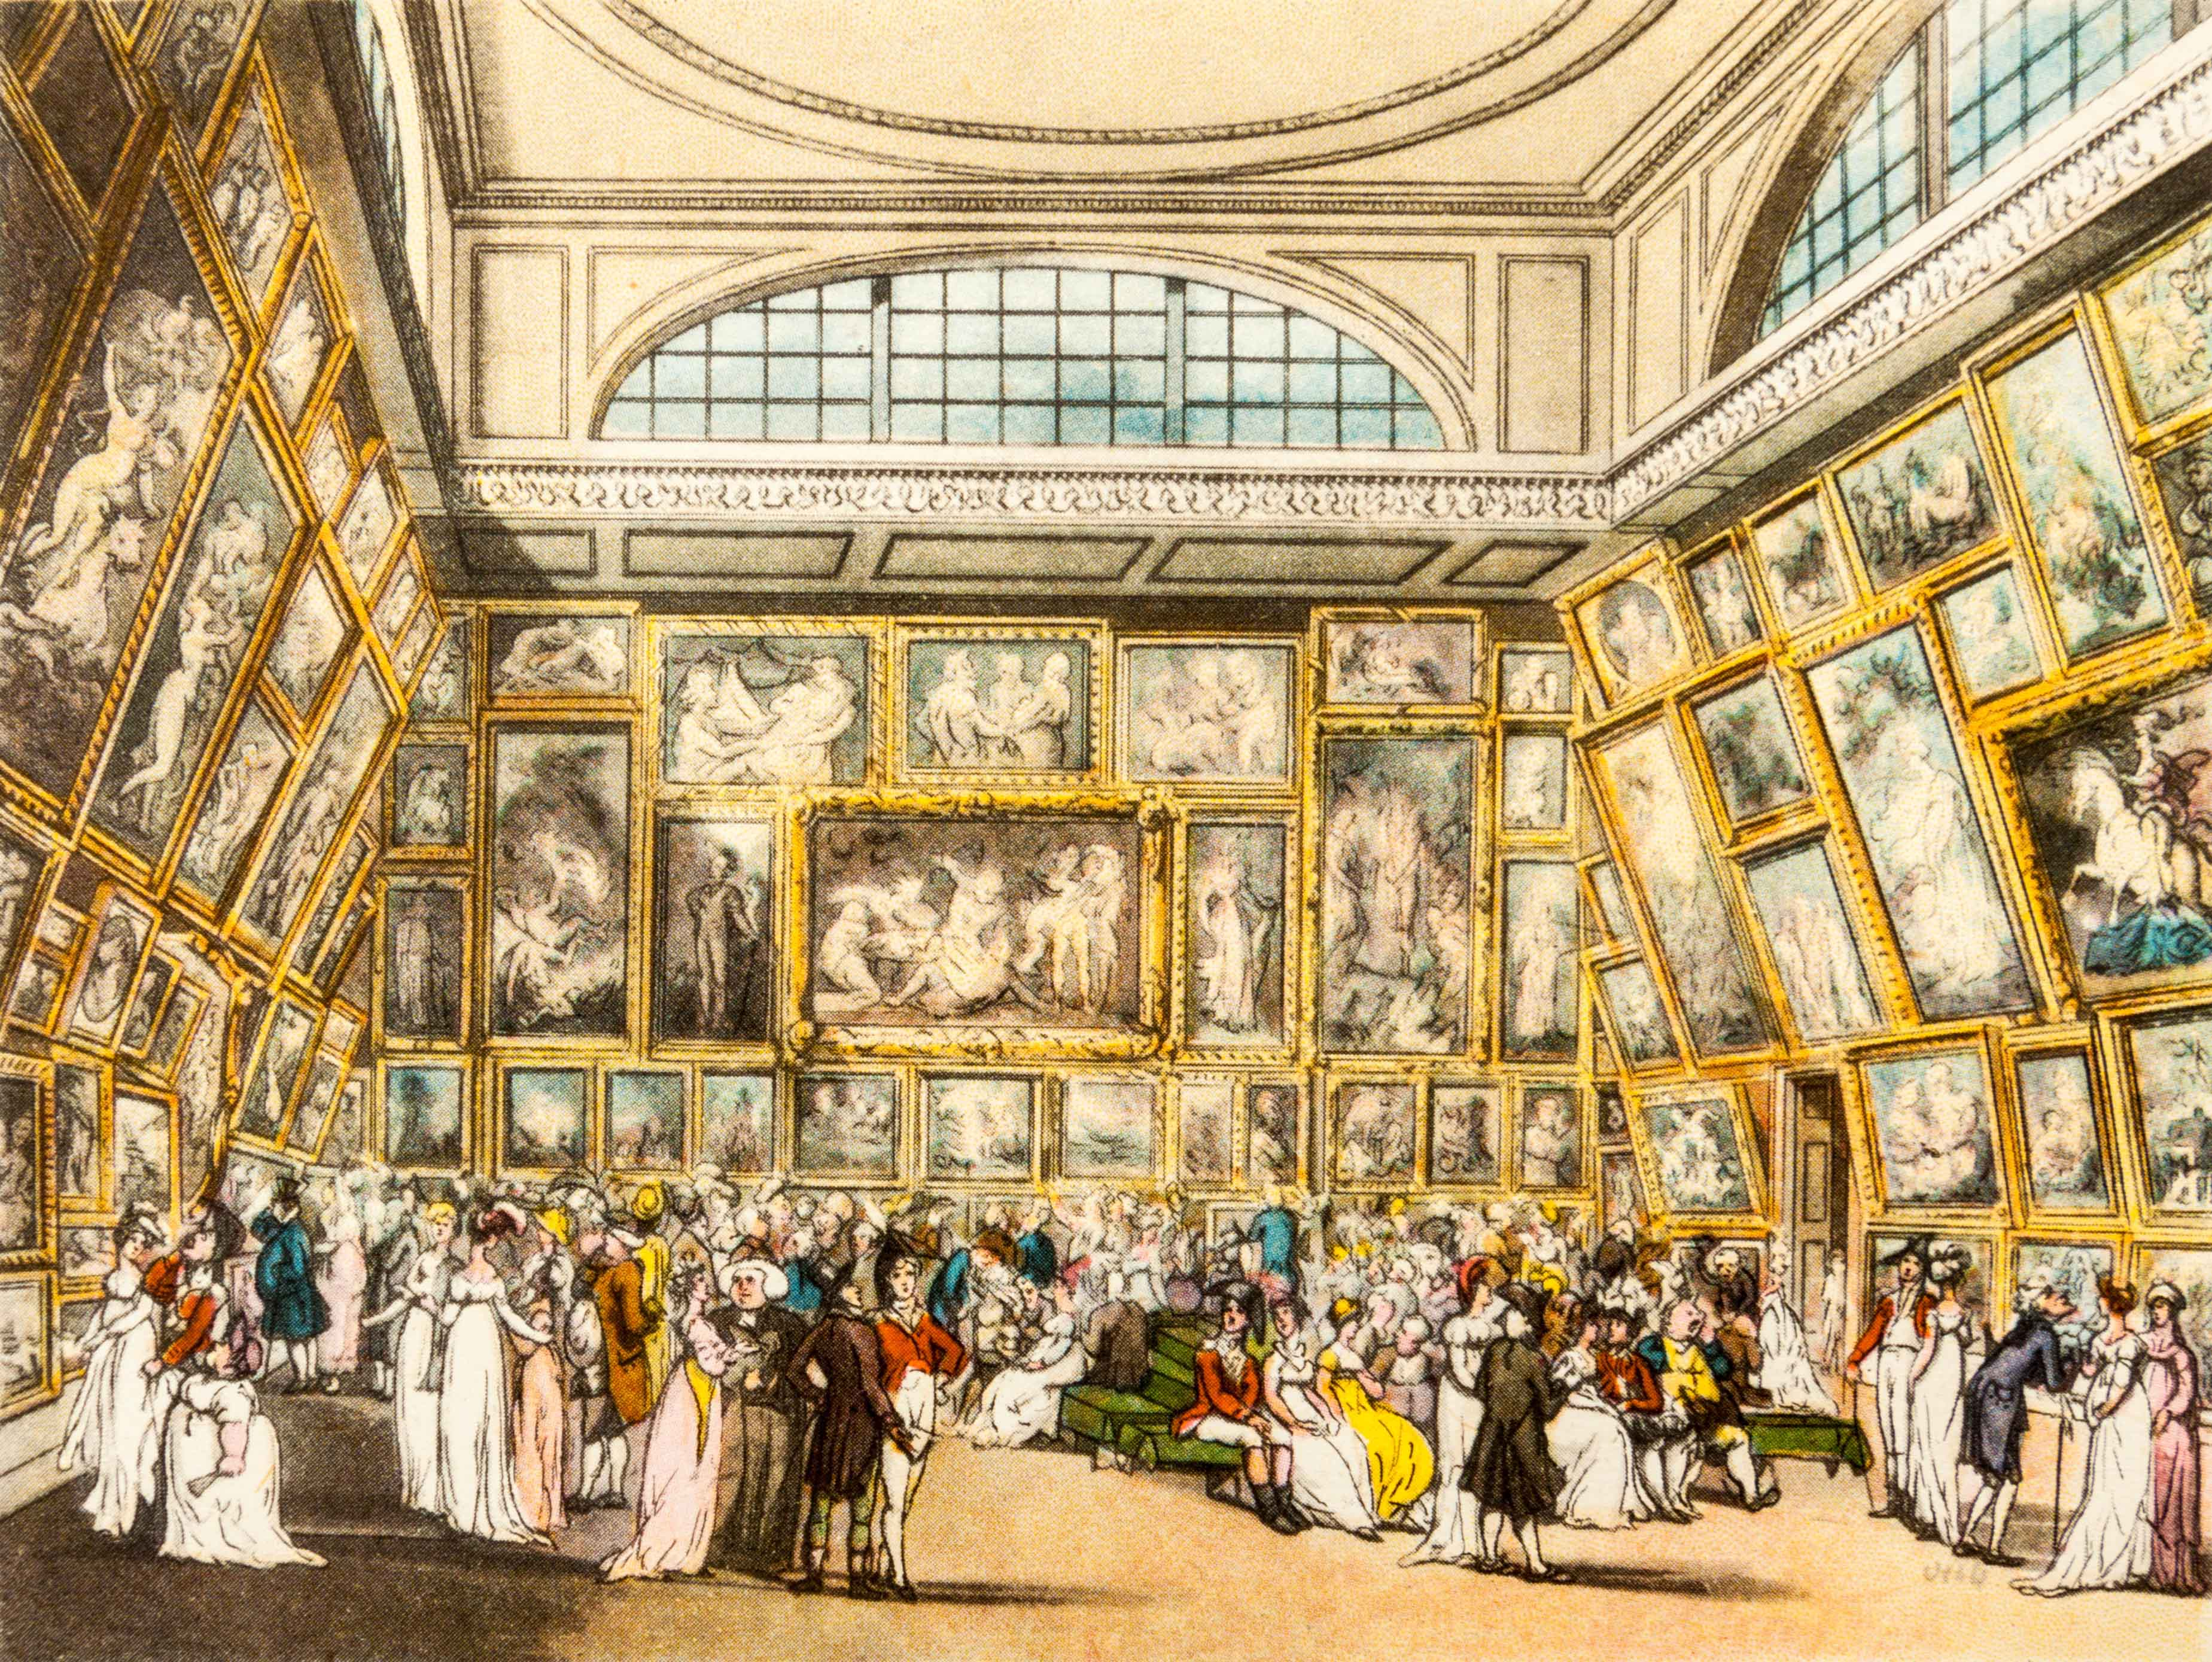 The Royal Academy Exhibition in Somerset House, 1808© Marc Tielemans /Alamy Stock Photo